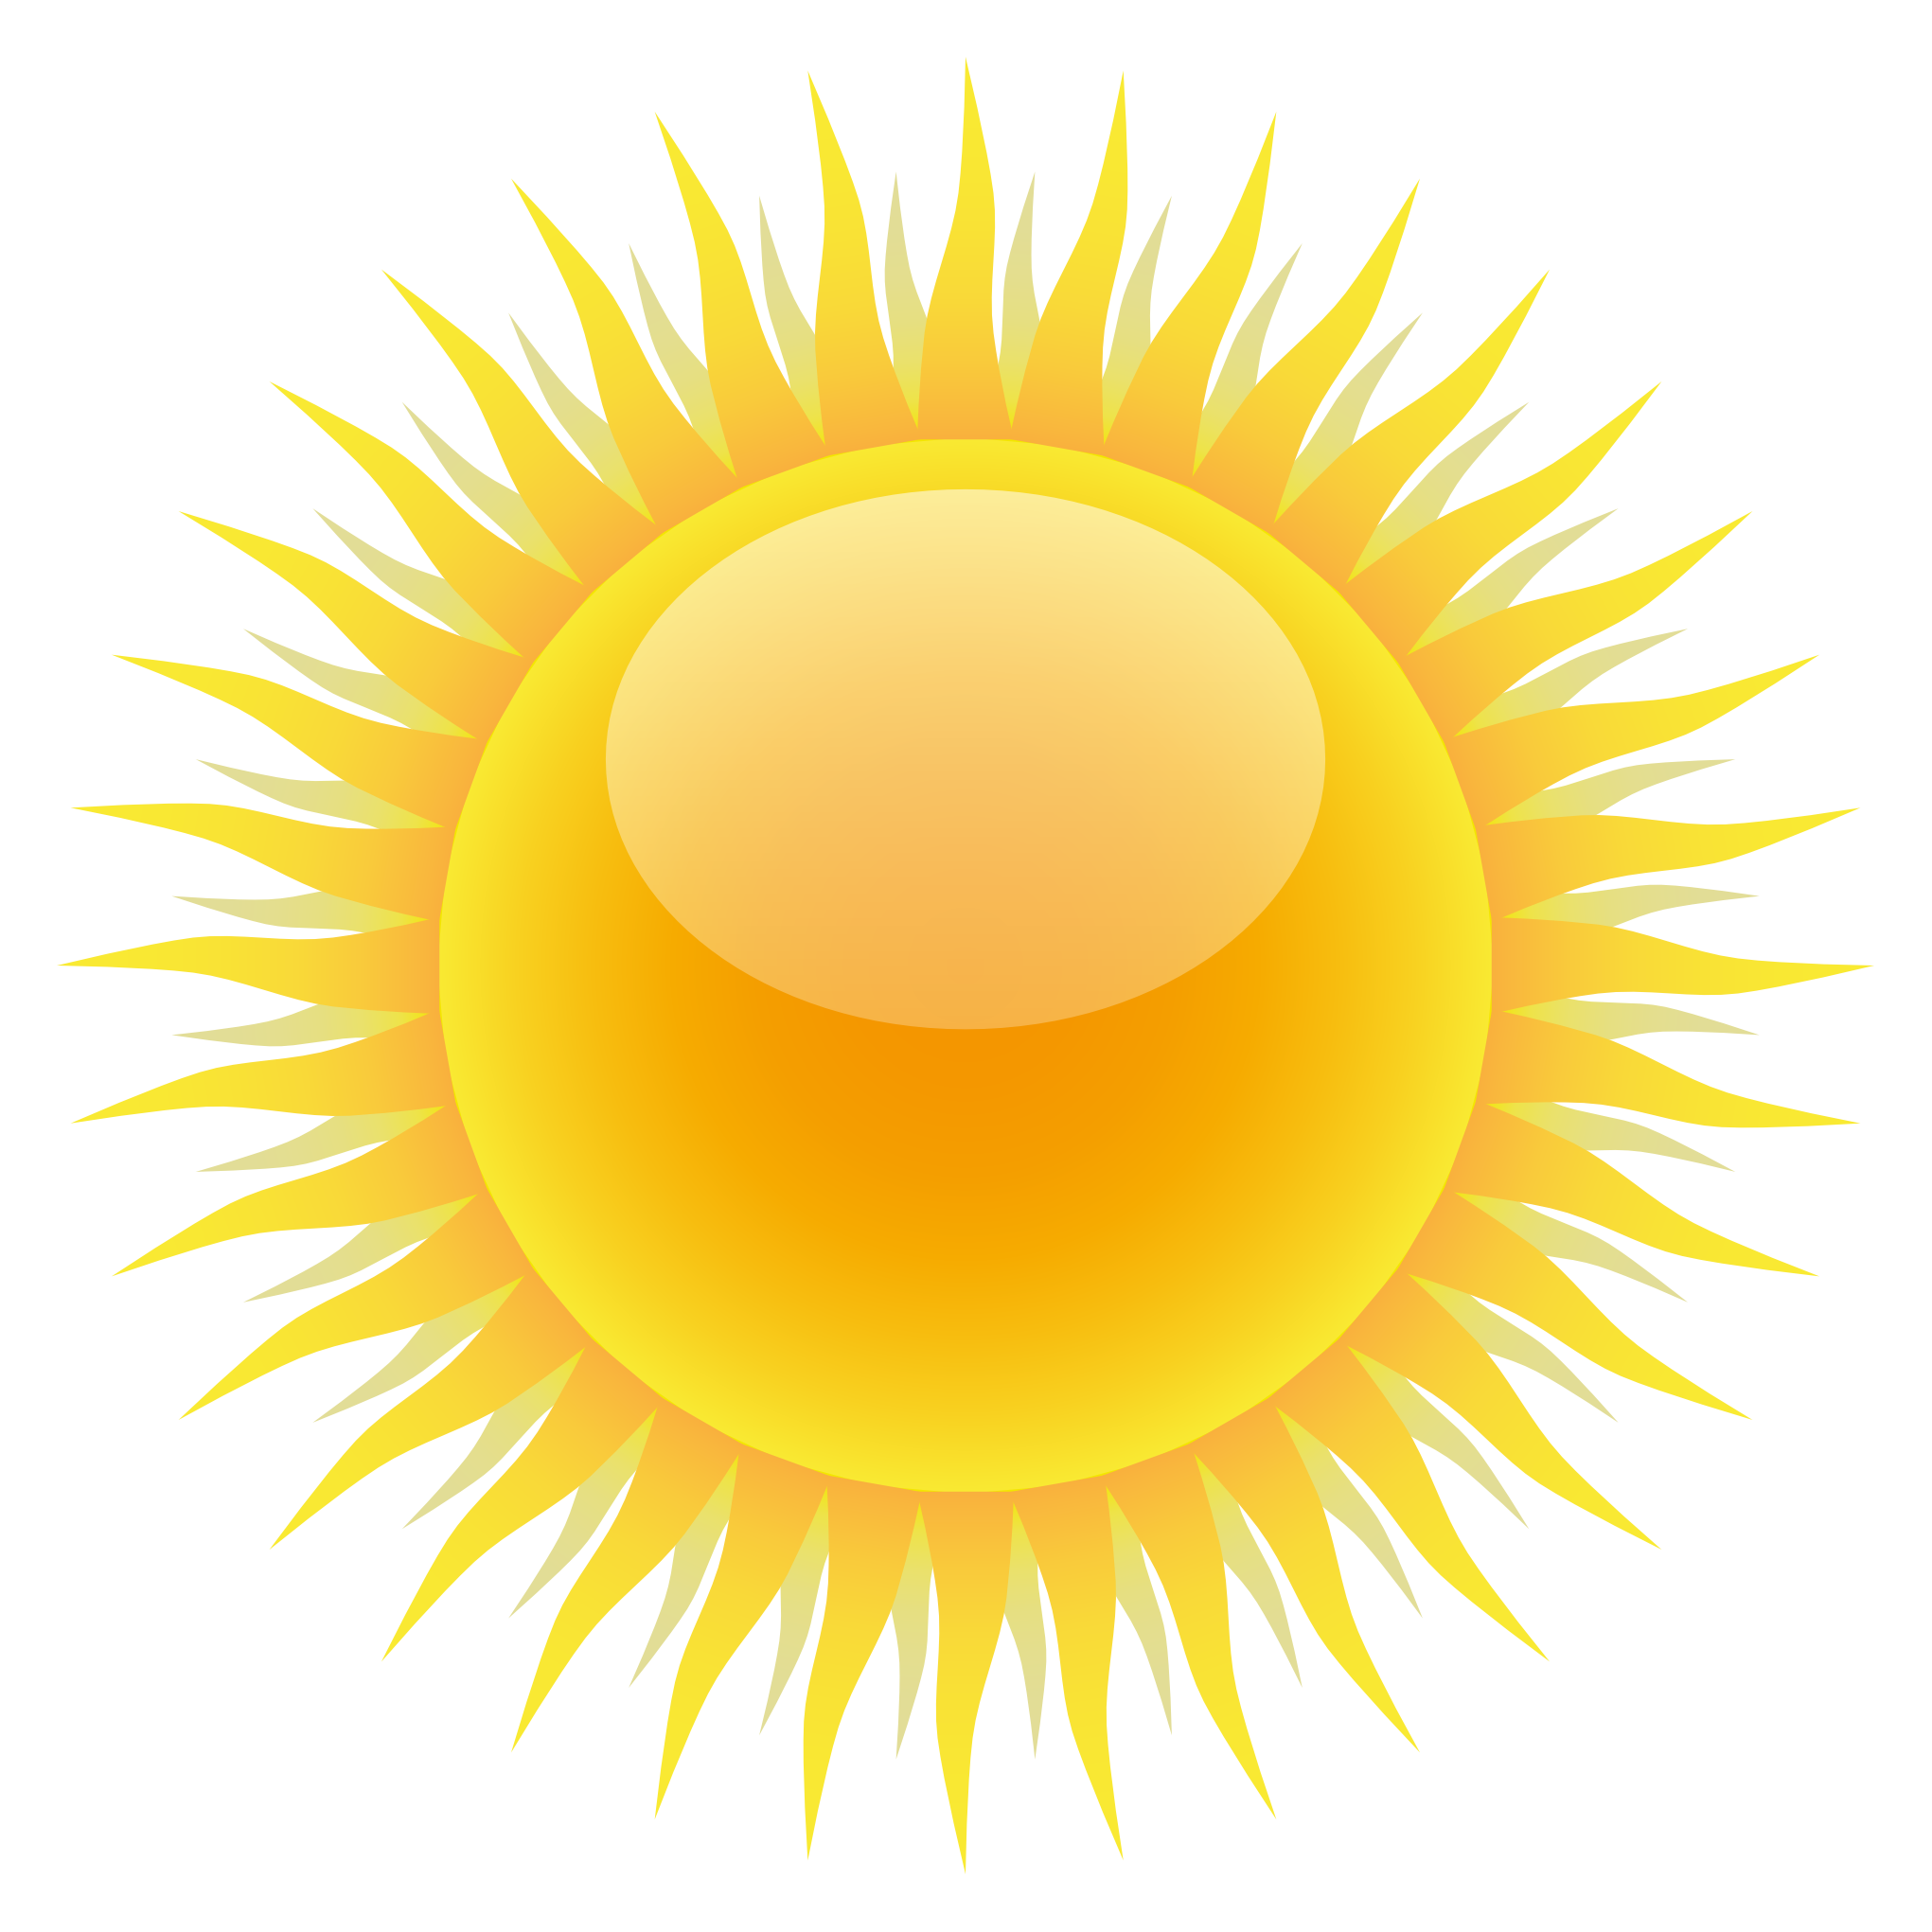 Exhaustion clip art sun. Heat clipart heat stroke